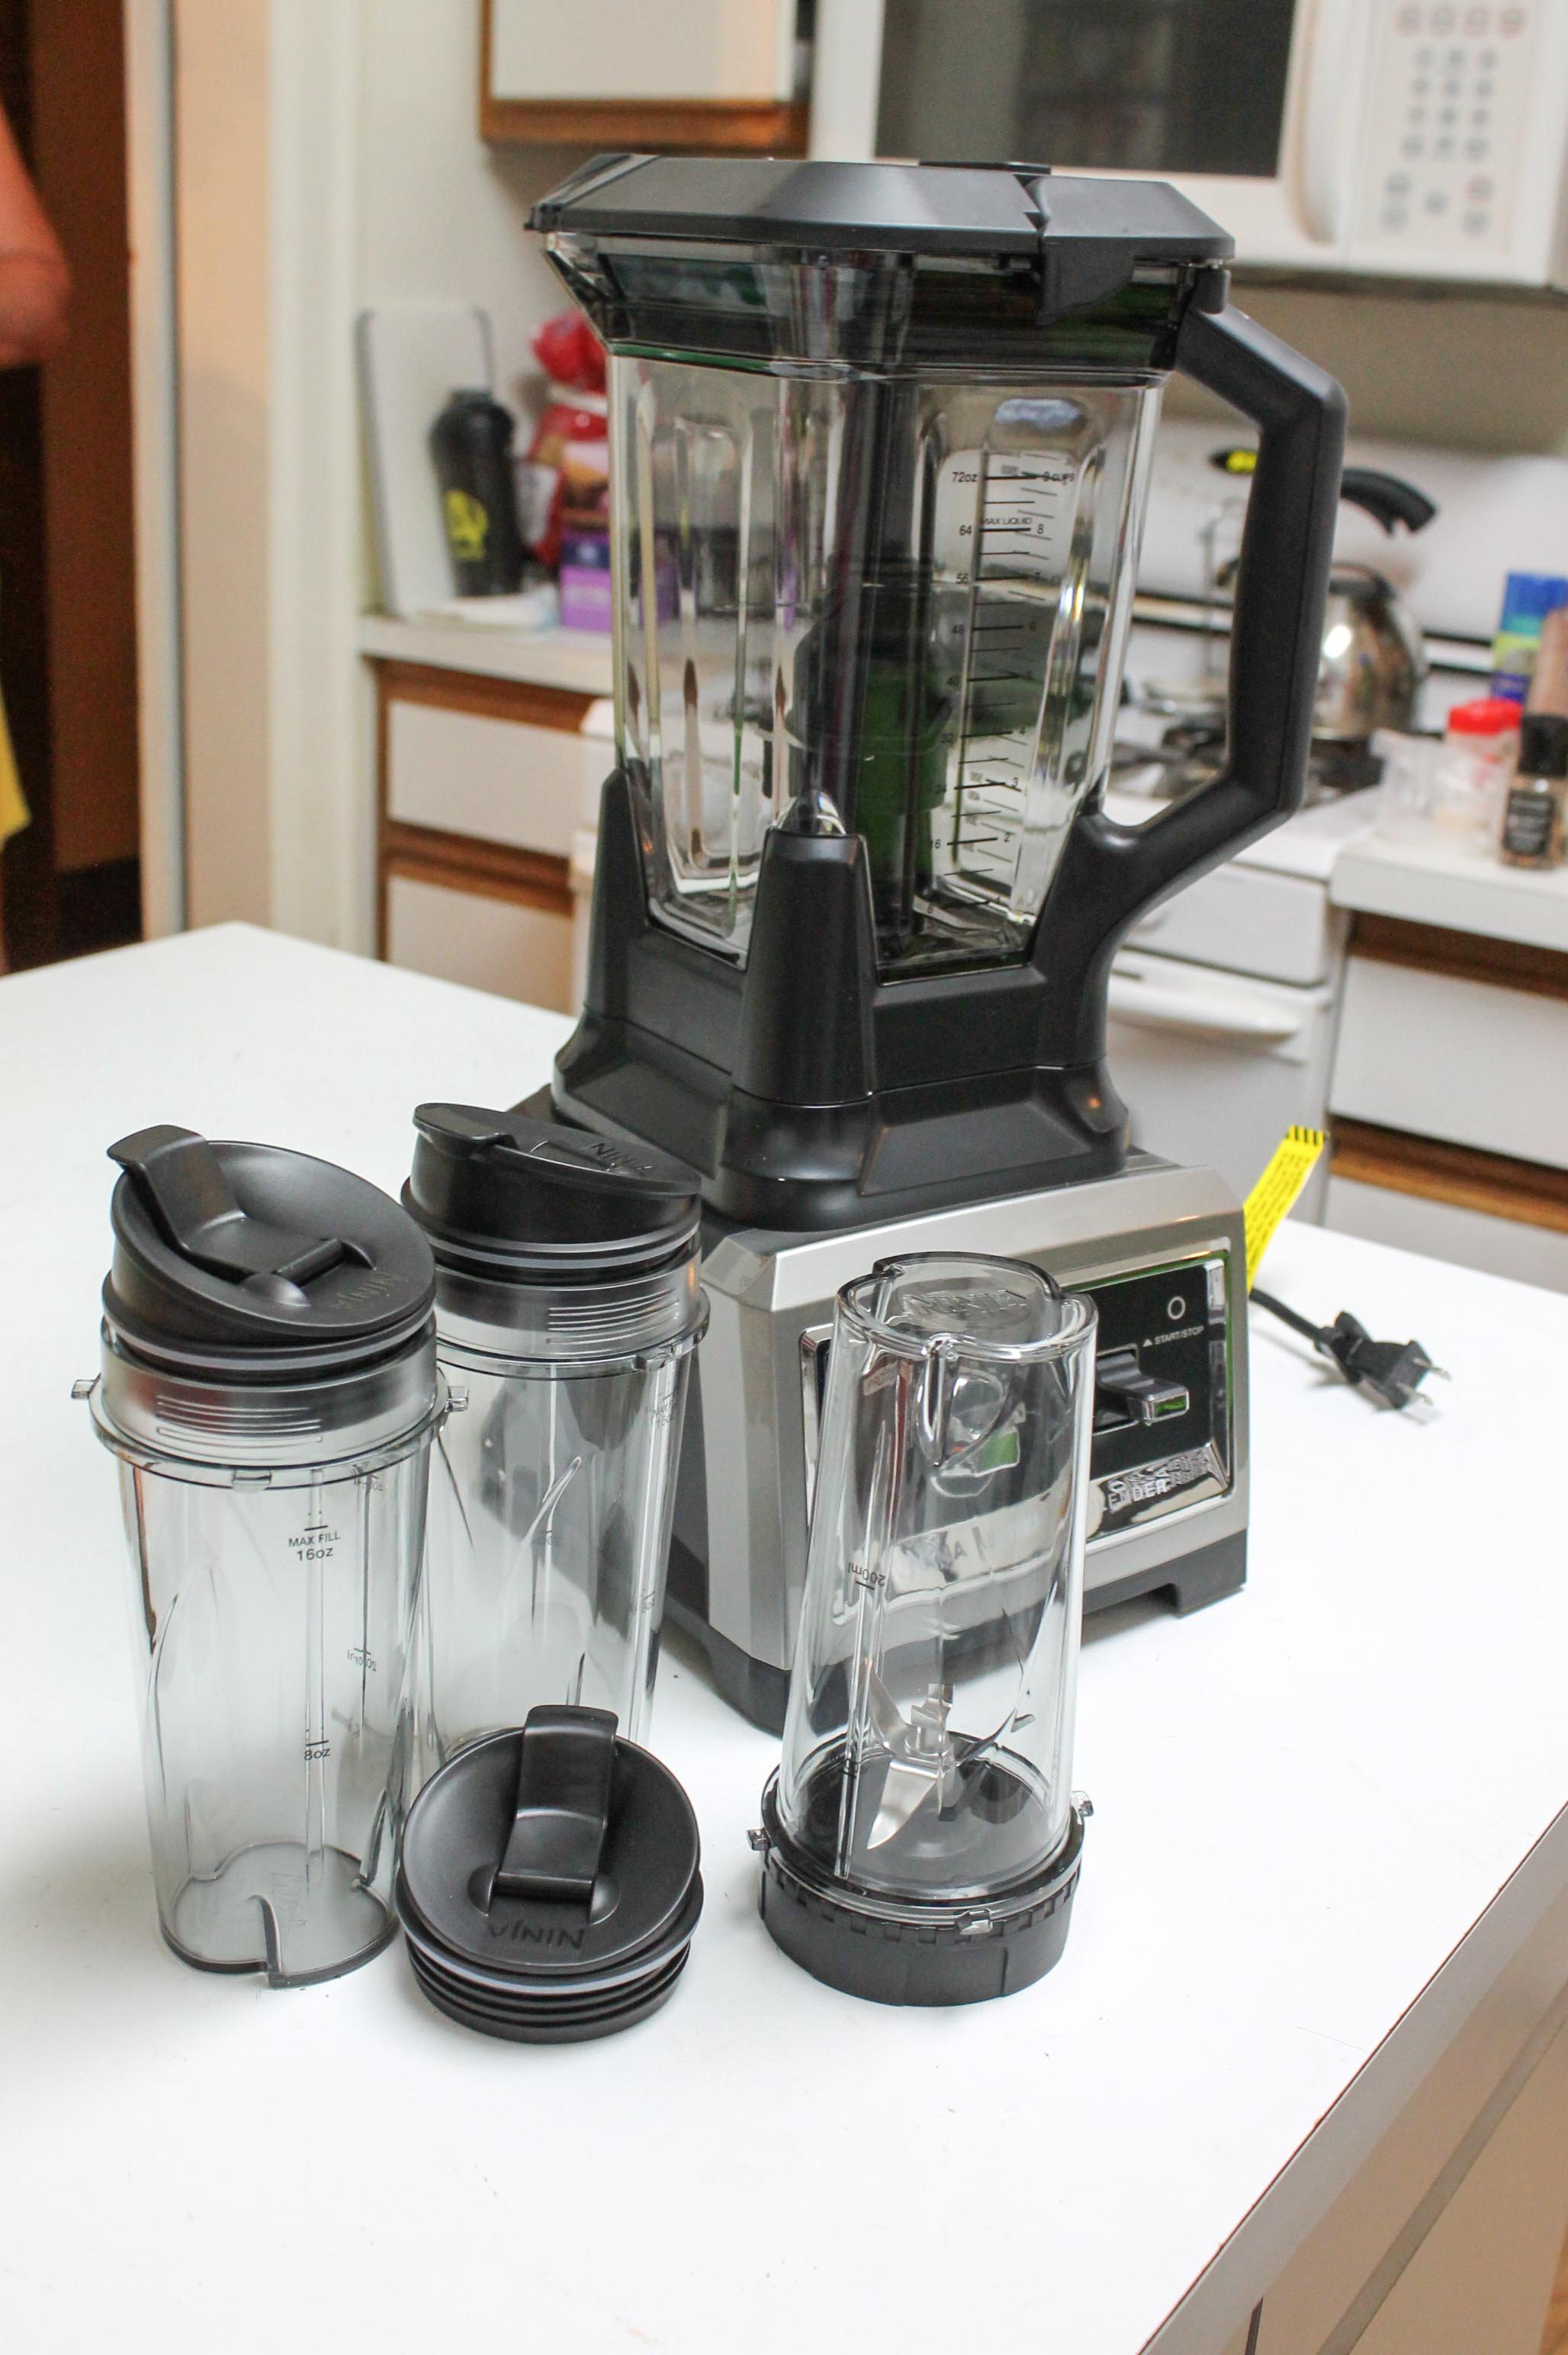 Ninja Blender Review and Cantaloupe Berry Smoothie Recipe